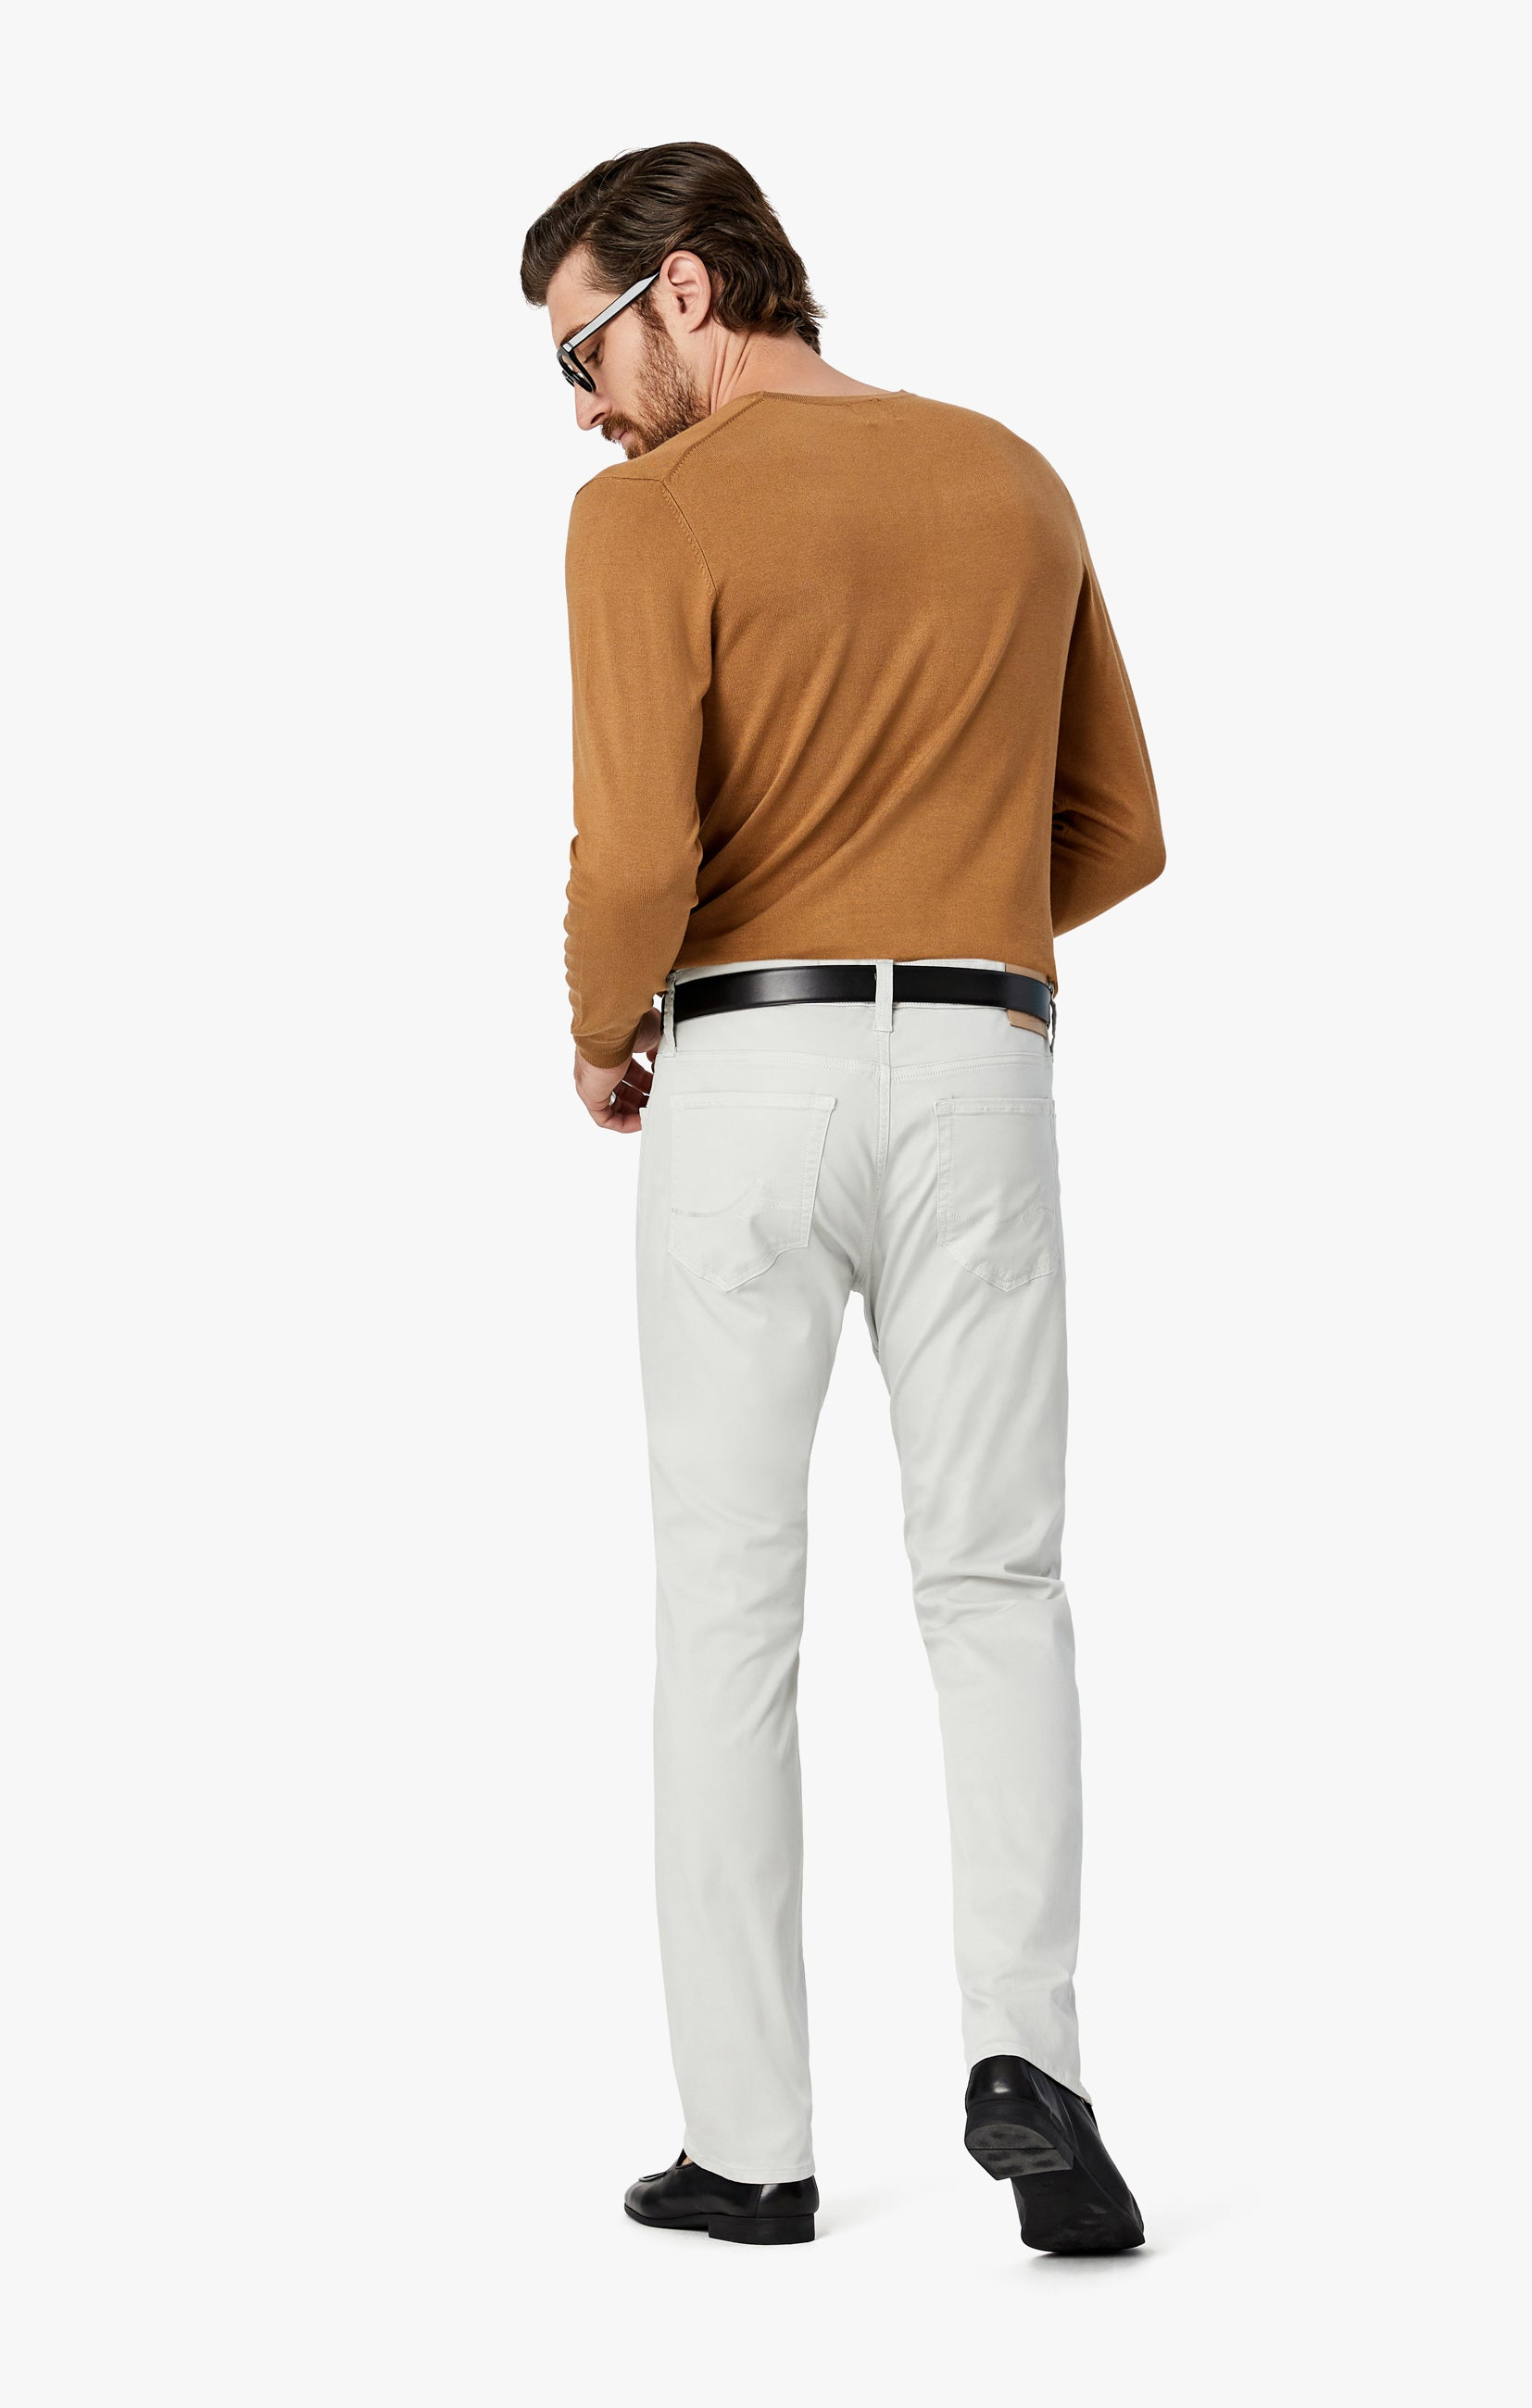 Courage Straight Leg Jeans in Bone Twill Image 9